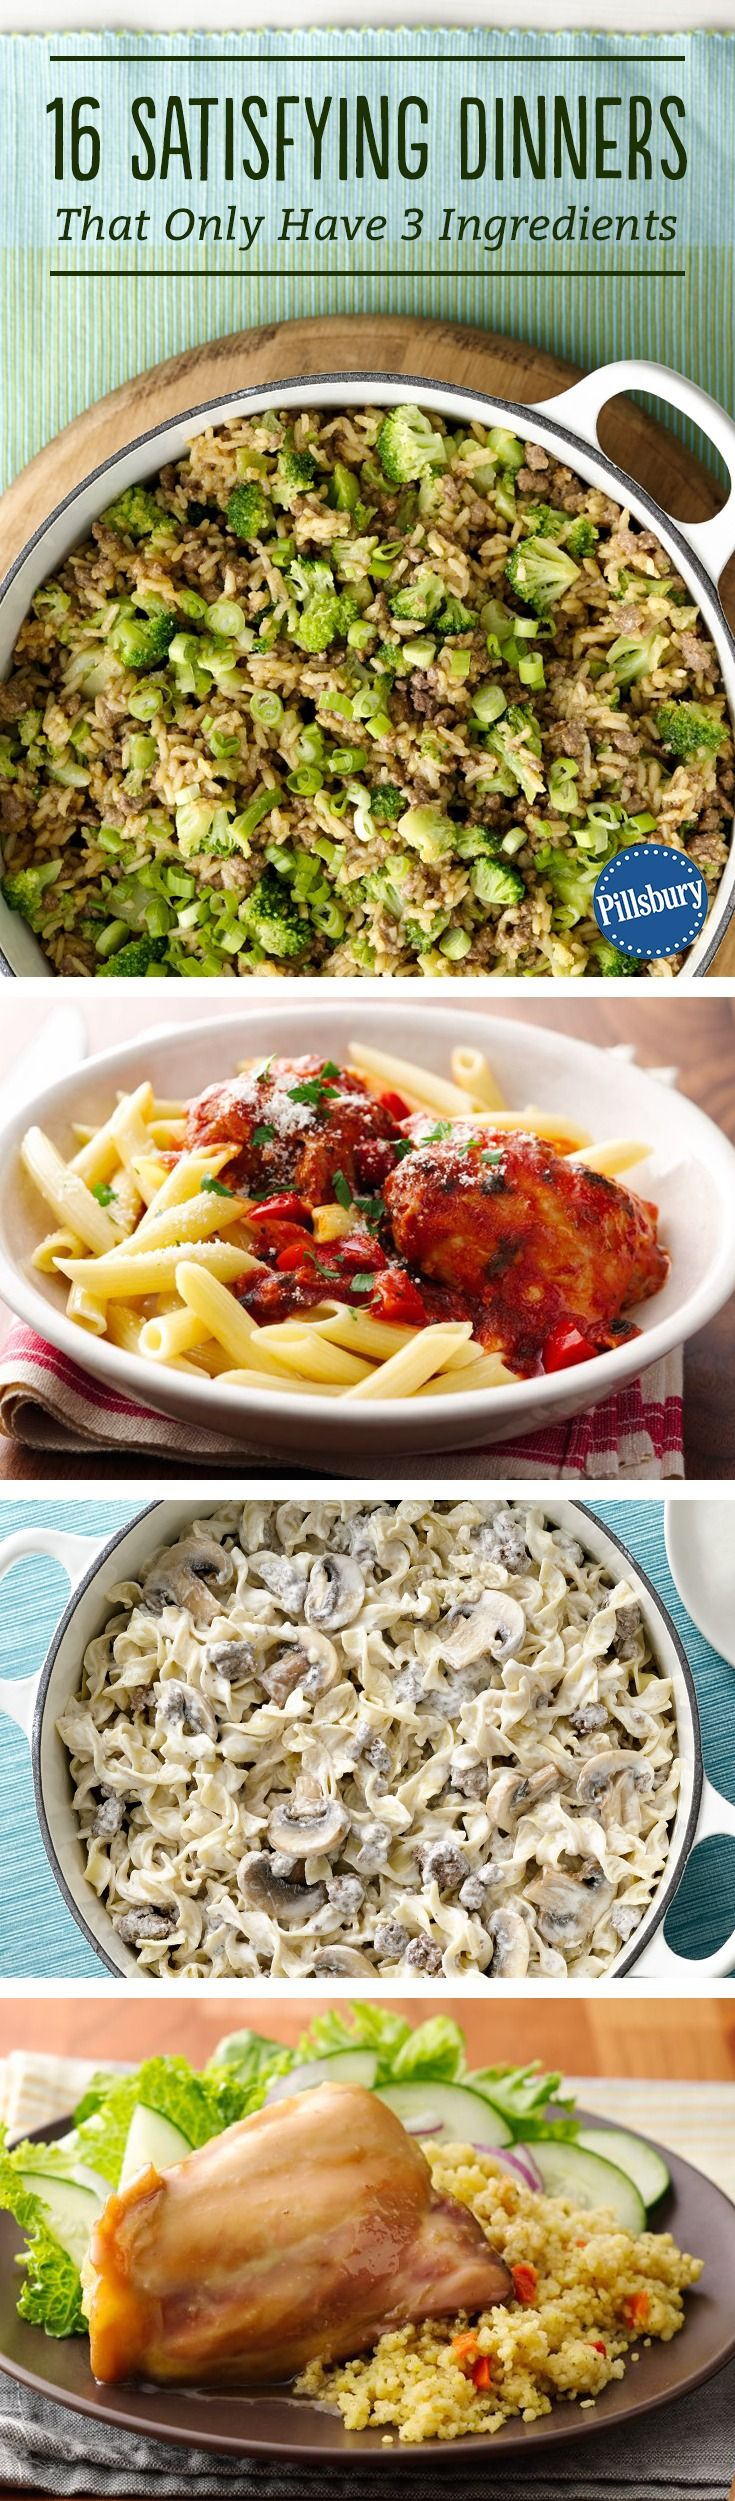 16 Satisfying Dinners That Only Have 3 Ingredients - Delicious and filling dinners don't always have to be complicated. These guaranteed-to-please recipes are as easy as 1-2-3!